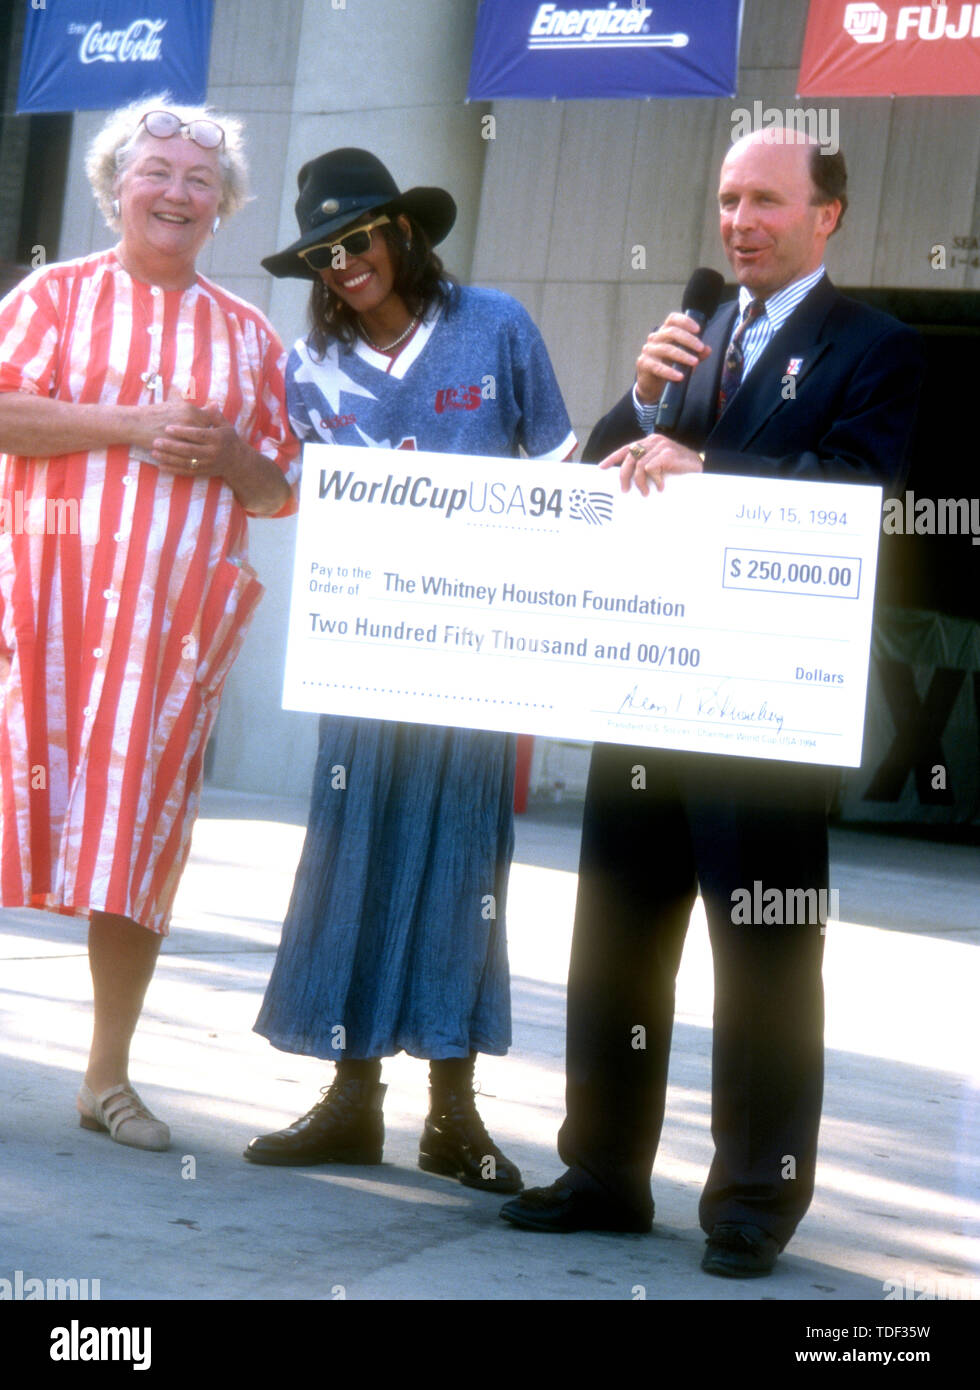 Pasadena, California, USA 15th July 1994 Publicist Lois Smith and Singer Whitney Houston attend Pre-Game World Cup Ceremony Event on July 15, 1994 at the Rose Bowl in Pasadena, California, USA. Photo by Barry King/Alamy Stock Photo - Stock Image